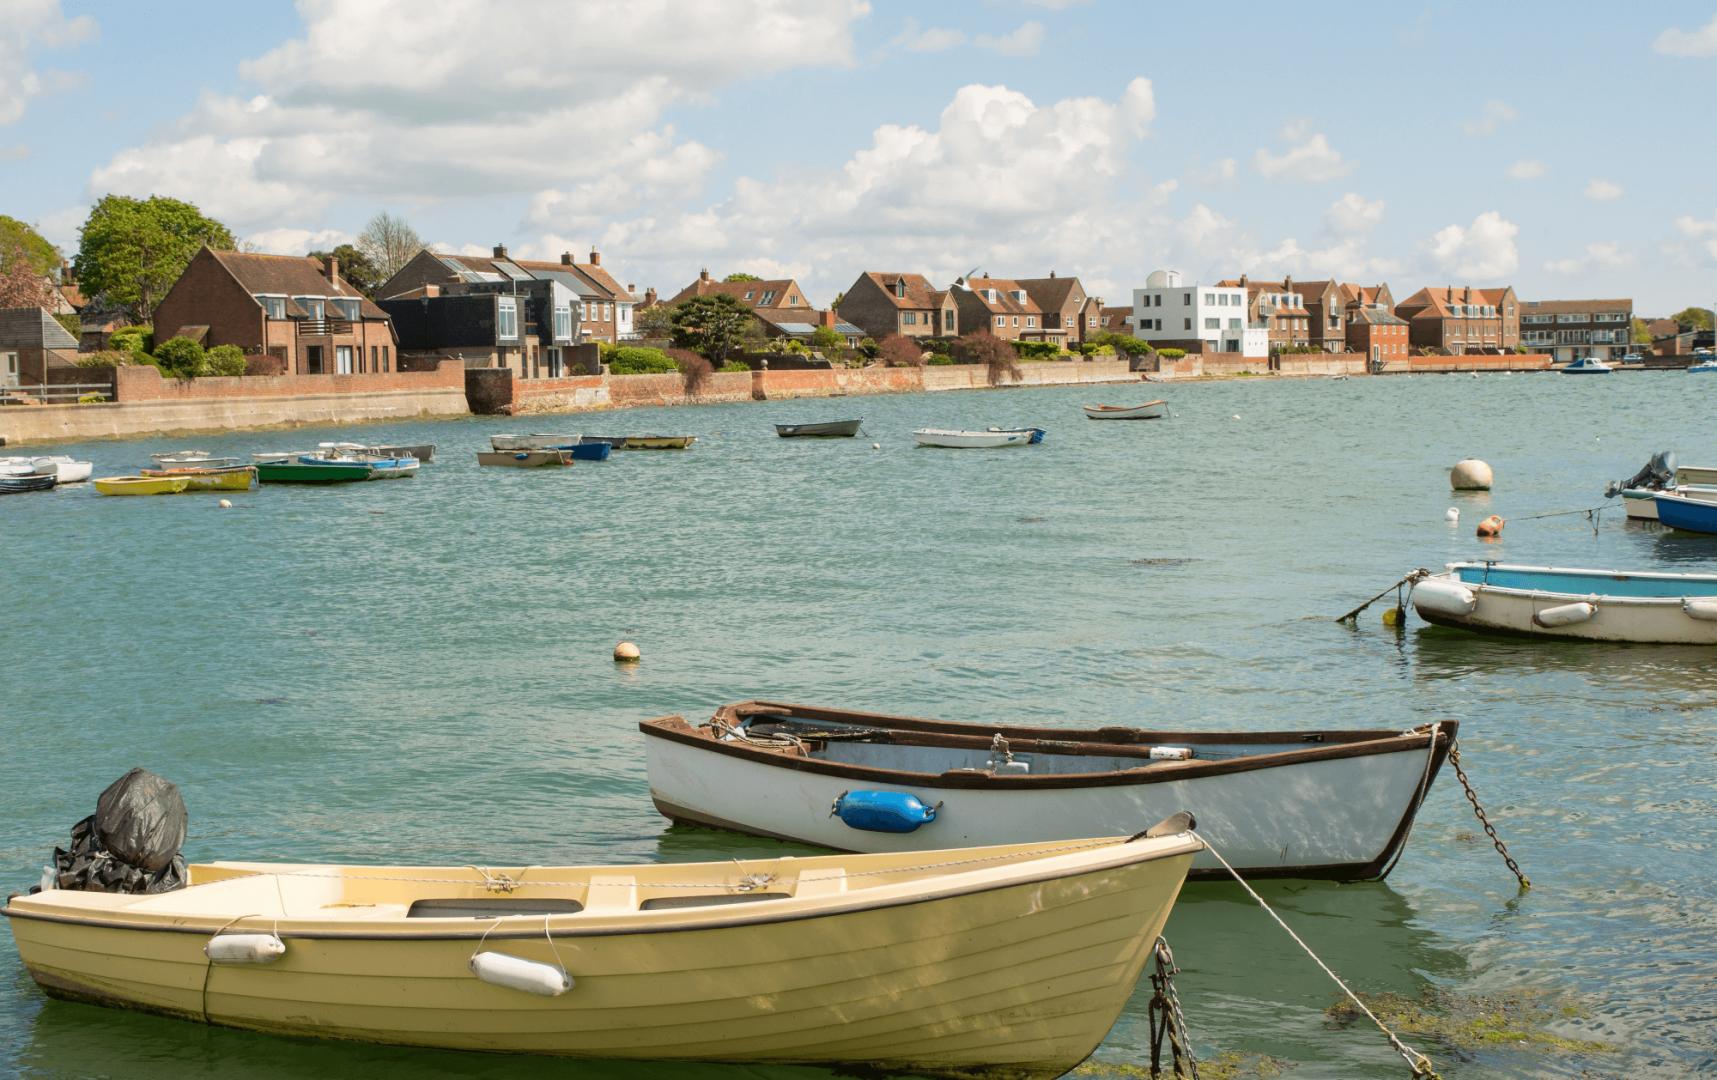 Area Guide for Emsworth and Havant